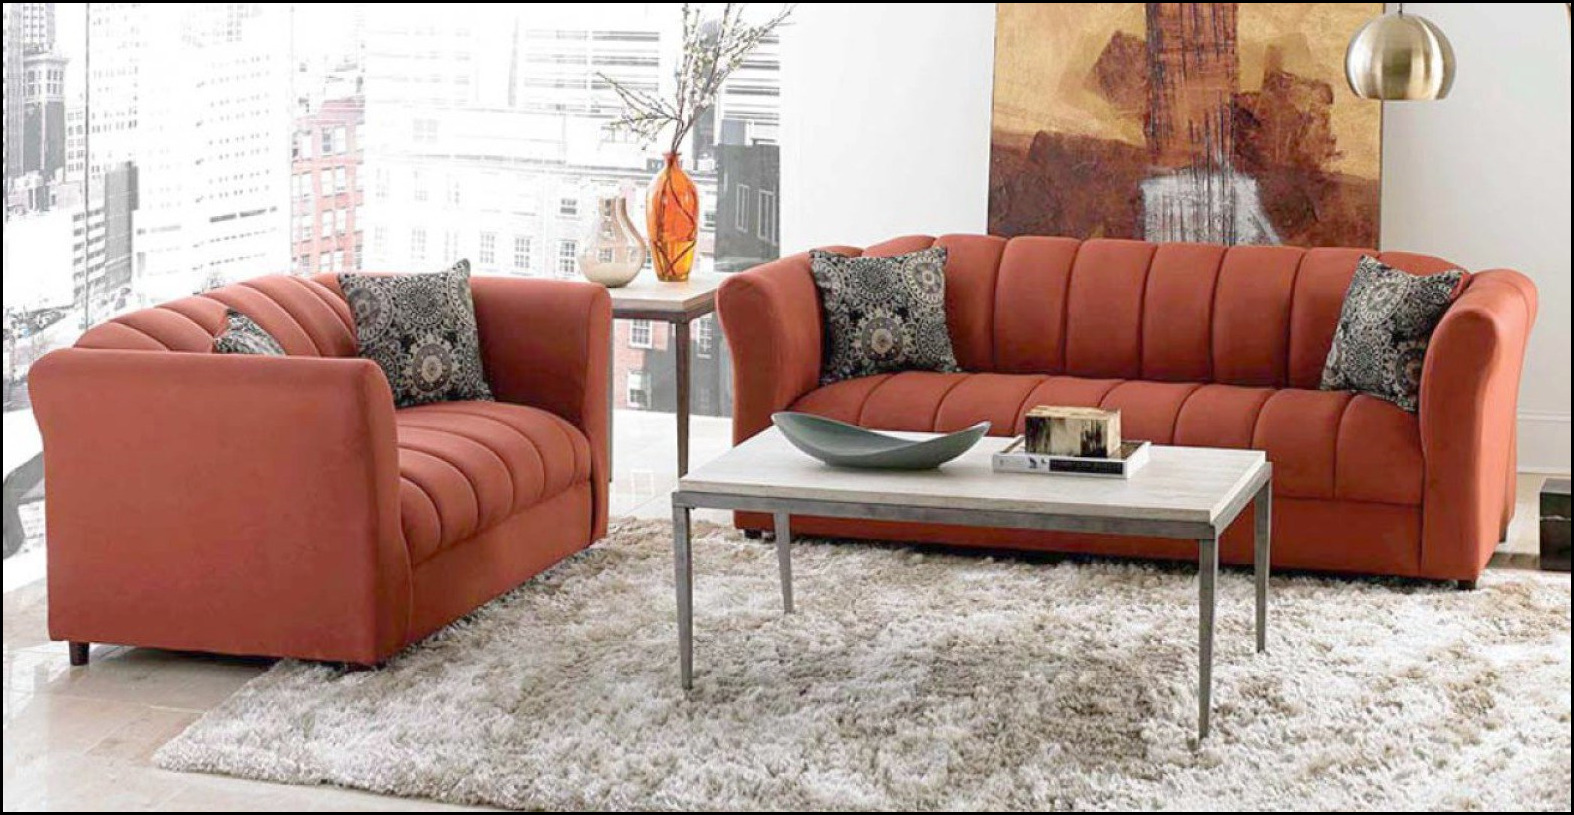 Merveilleux Cheap Furniture Stores Orlando 2